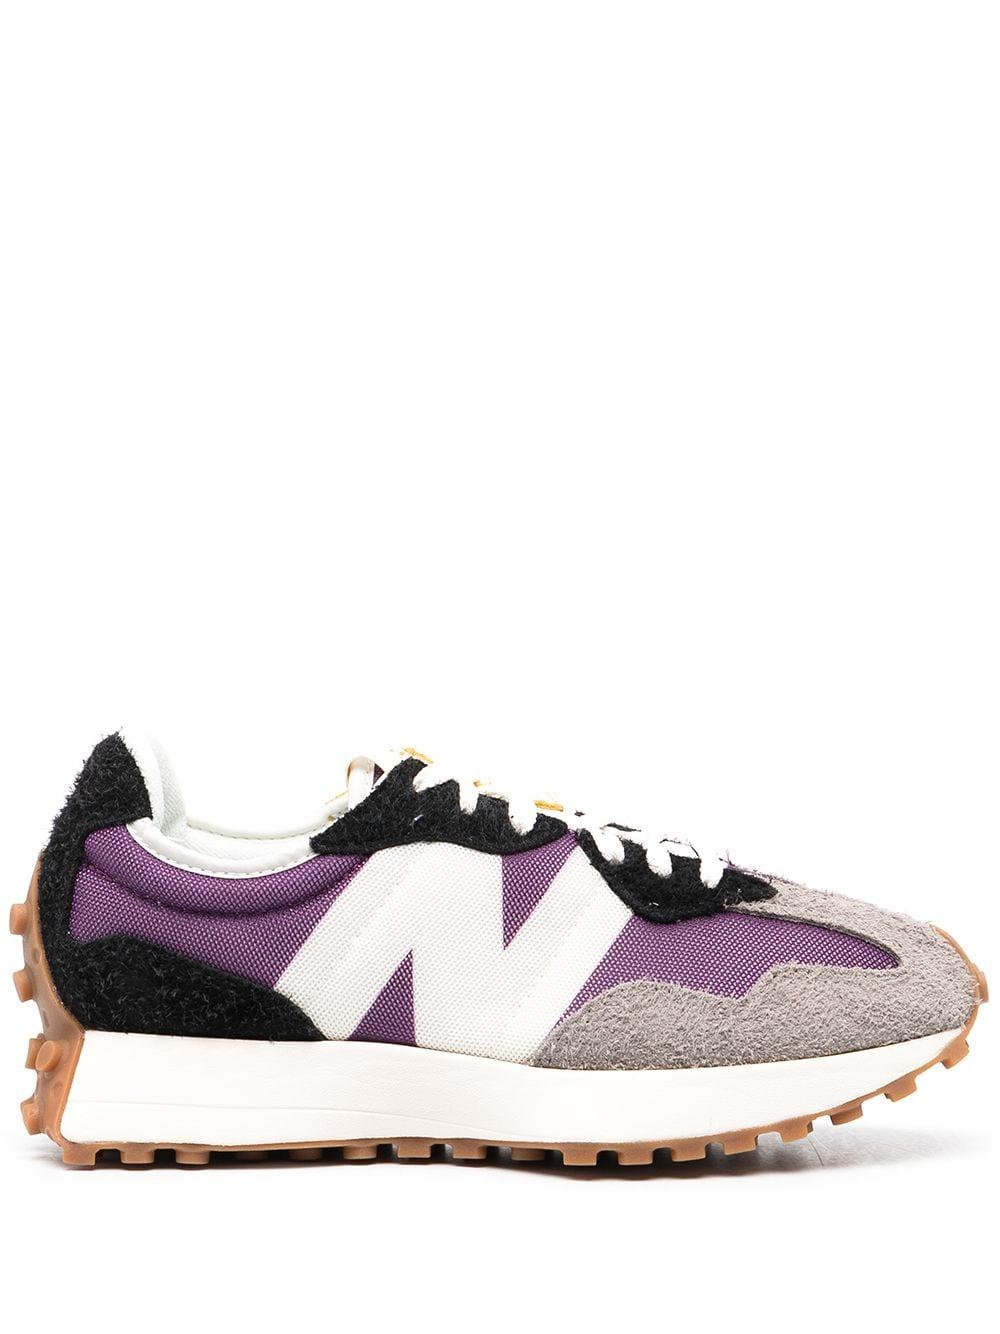 New Balance Synthetic 327 Nylon And Mesh Retro Sneakers in Purple ...